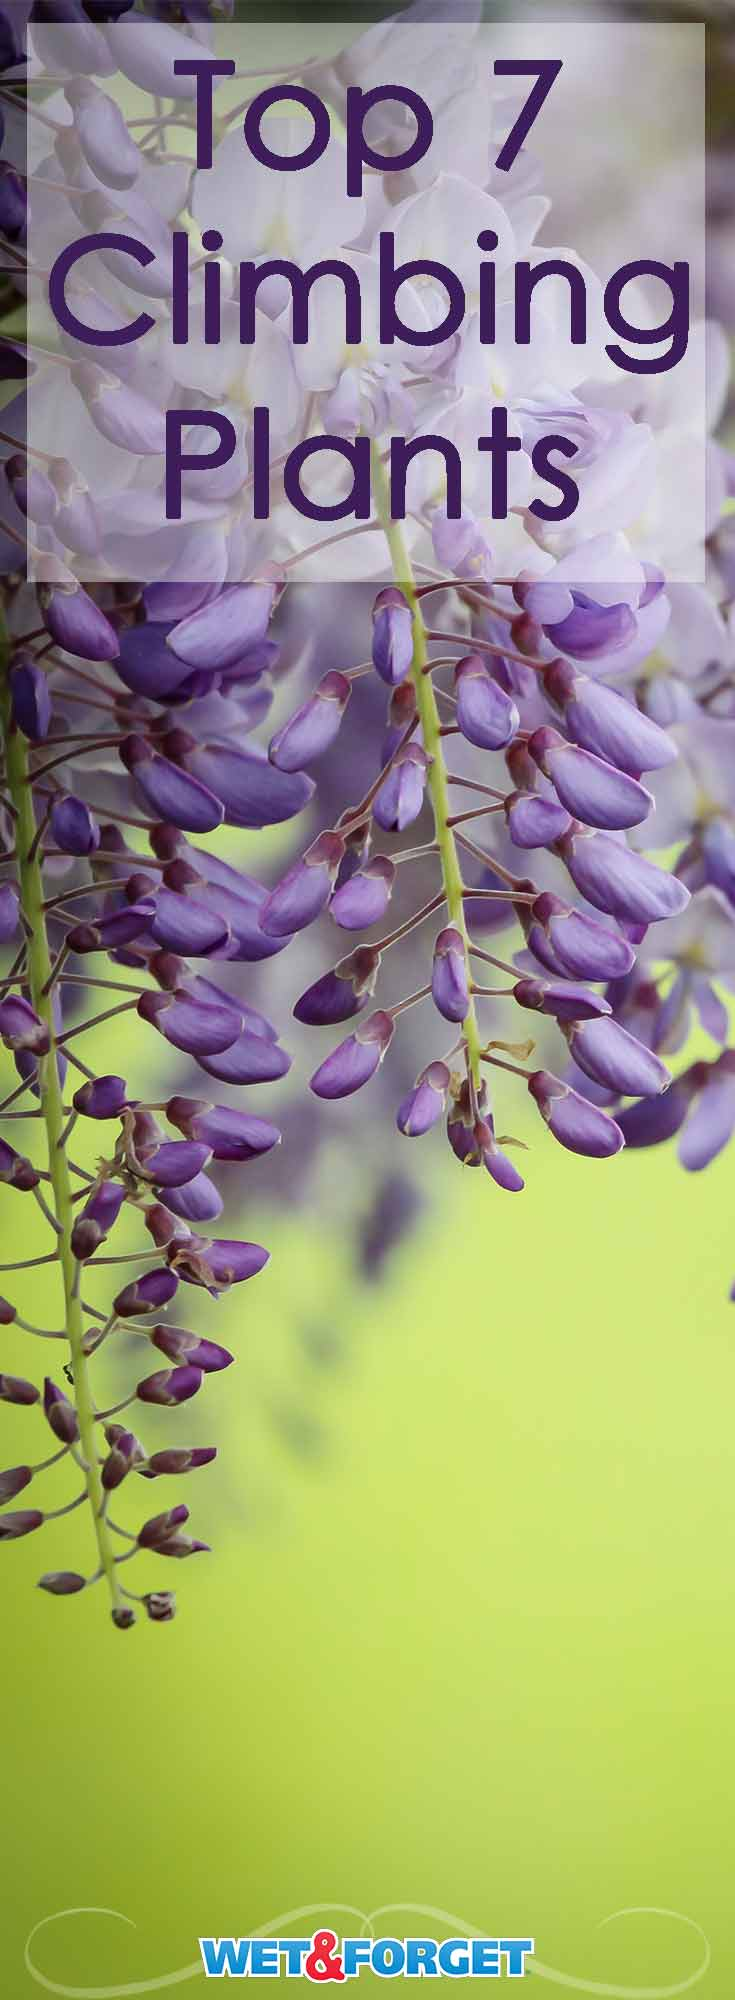 These gorgeous climbing plants are sure to brighten your garden! Discover which climbing plant suits your backyard best.